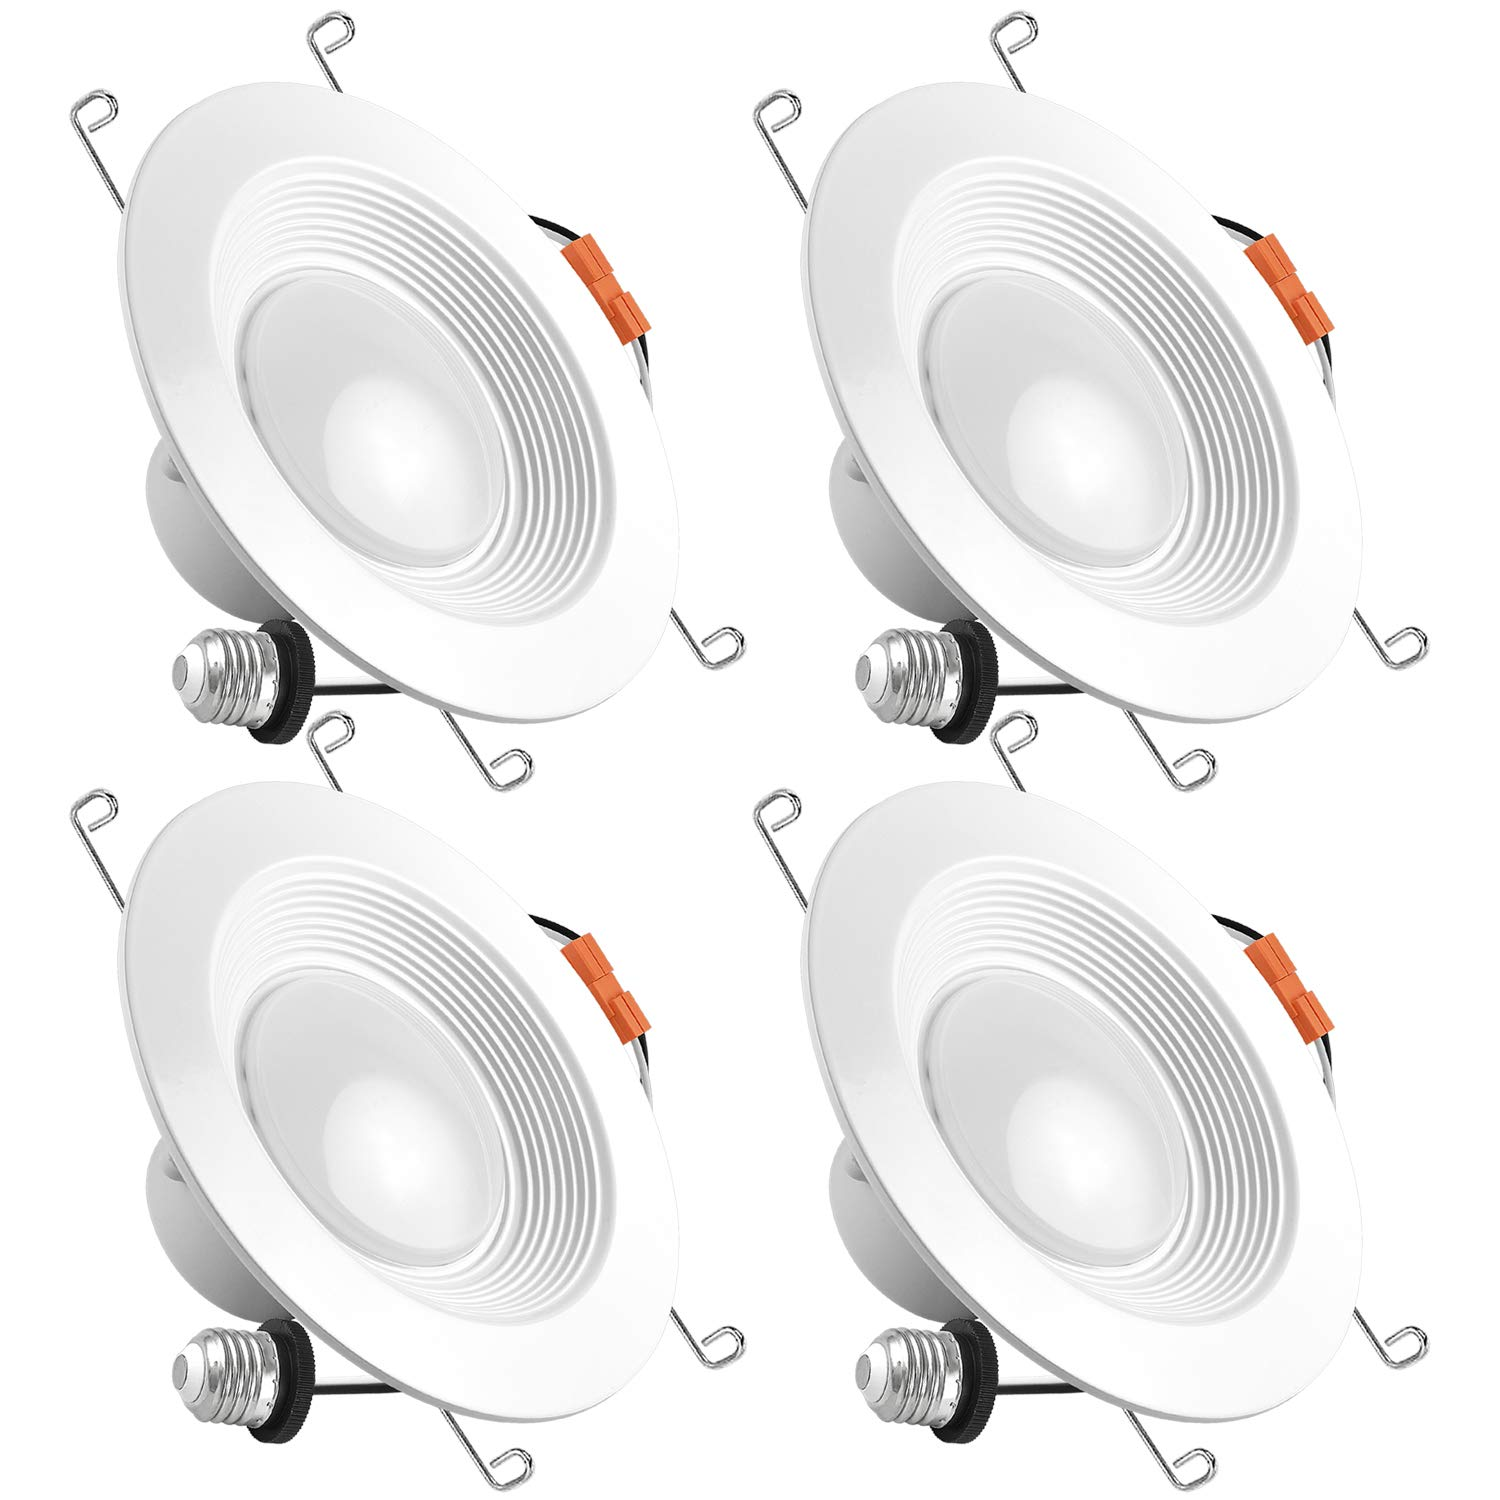 Luxrite 5/6 Inch LED Recessed Light, 15W (120W Equivalent), 5000K Bright White, 1300lm, Dimmable, Retrofit LED Can Light, Energy Star & UL, Damp Rated - Perfect for Kitchen, Bathroom, Office (4 Pack) by Luxrite (Image #1)